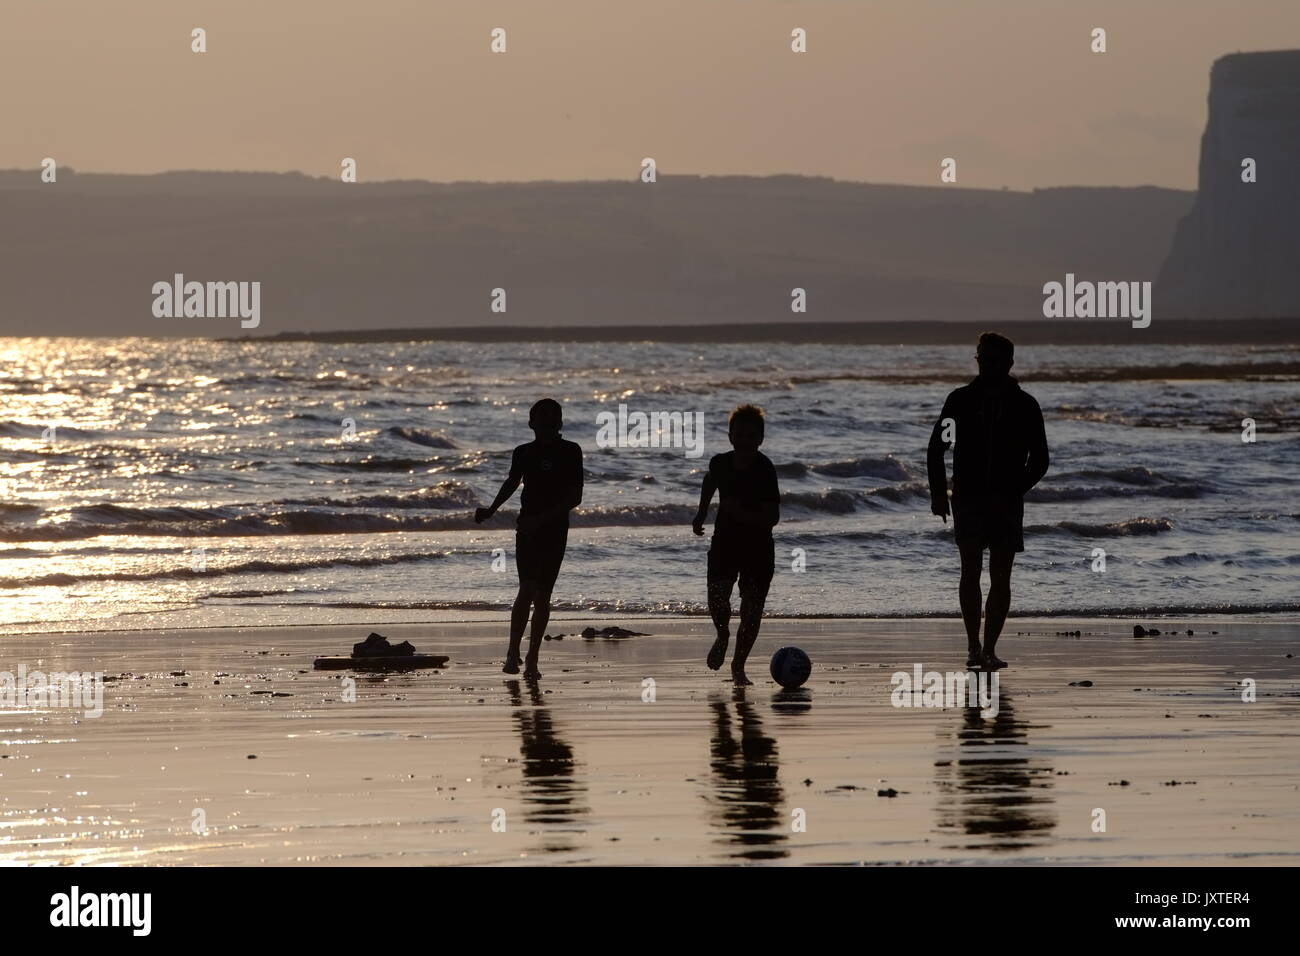 Father and sons playing ball games on a beach at sunset, Seven Sisters, South Downs National Park, East Sussex - Stock Image